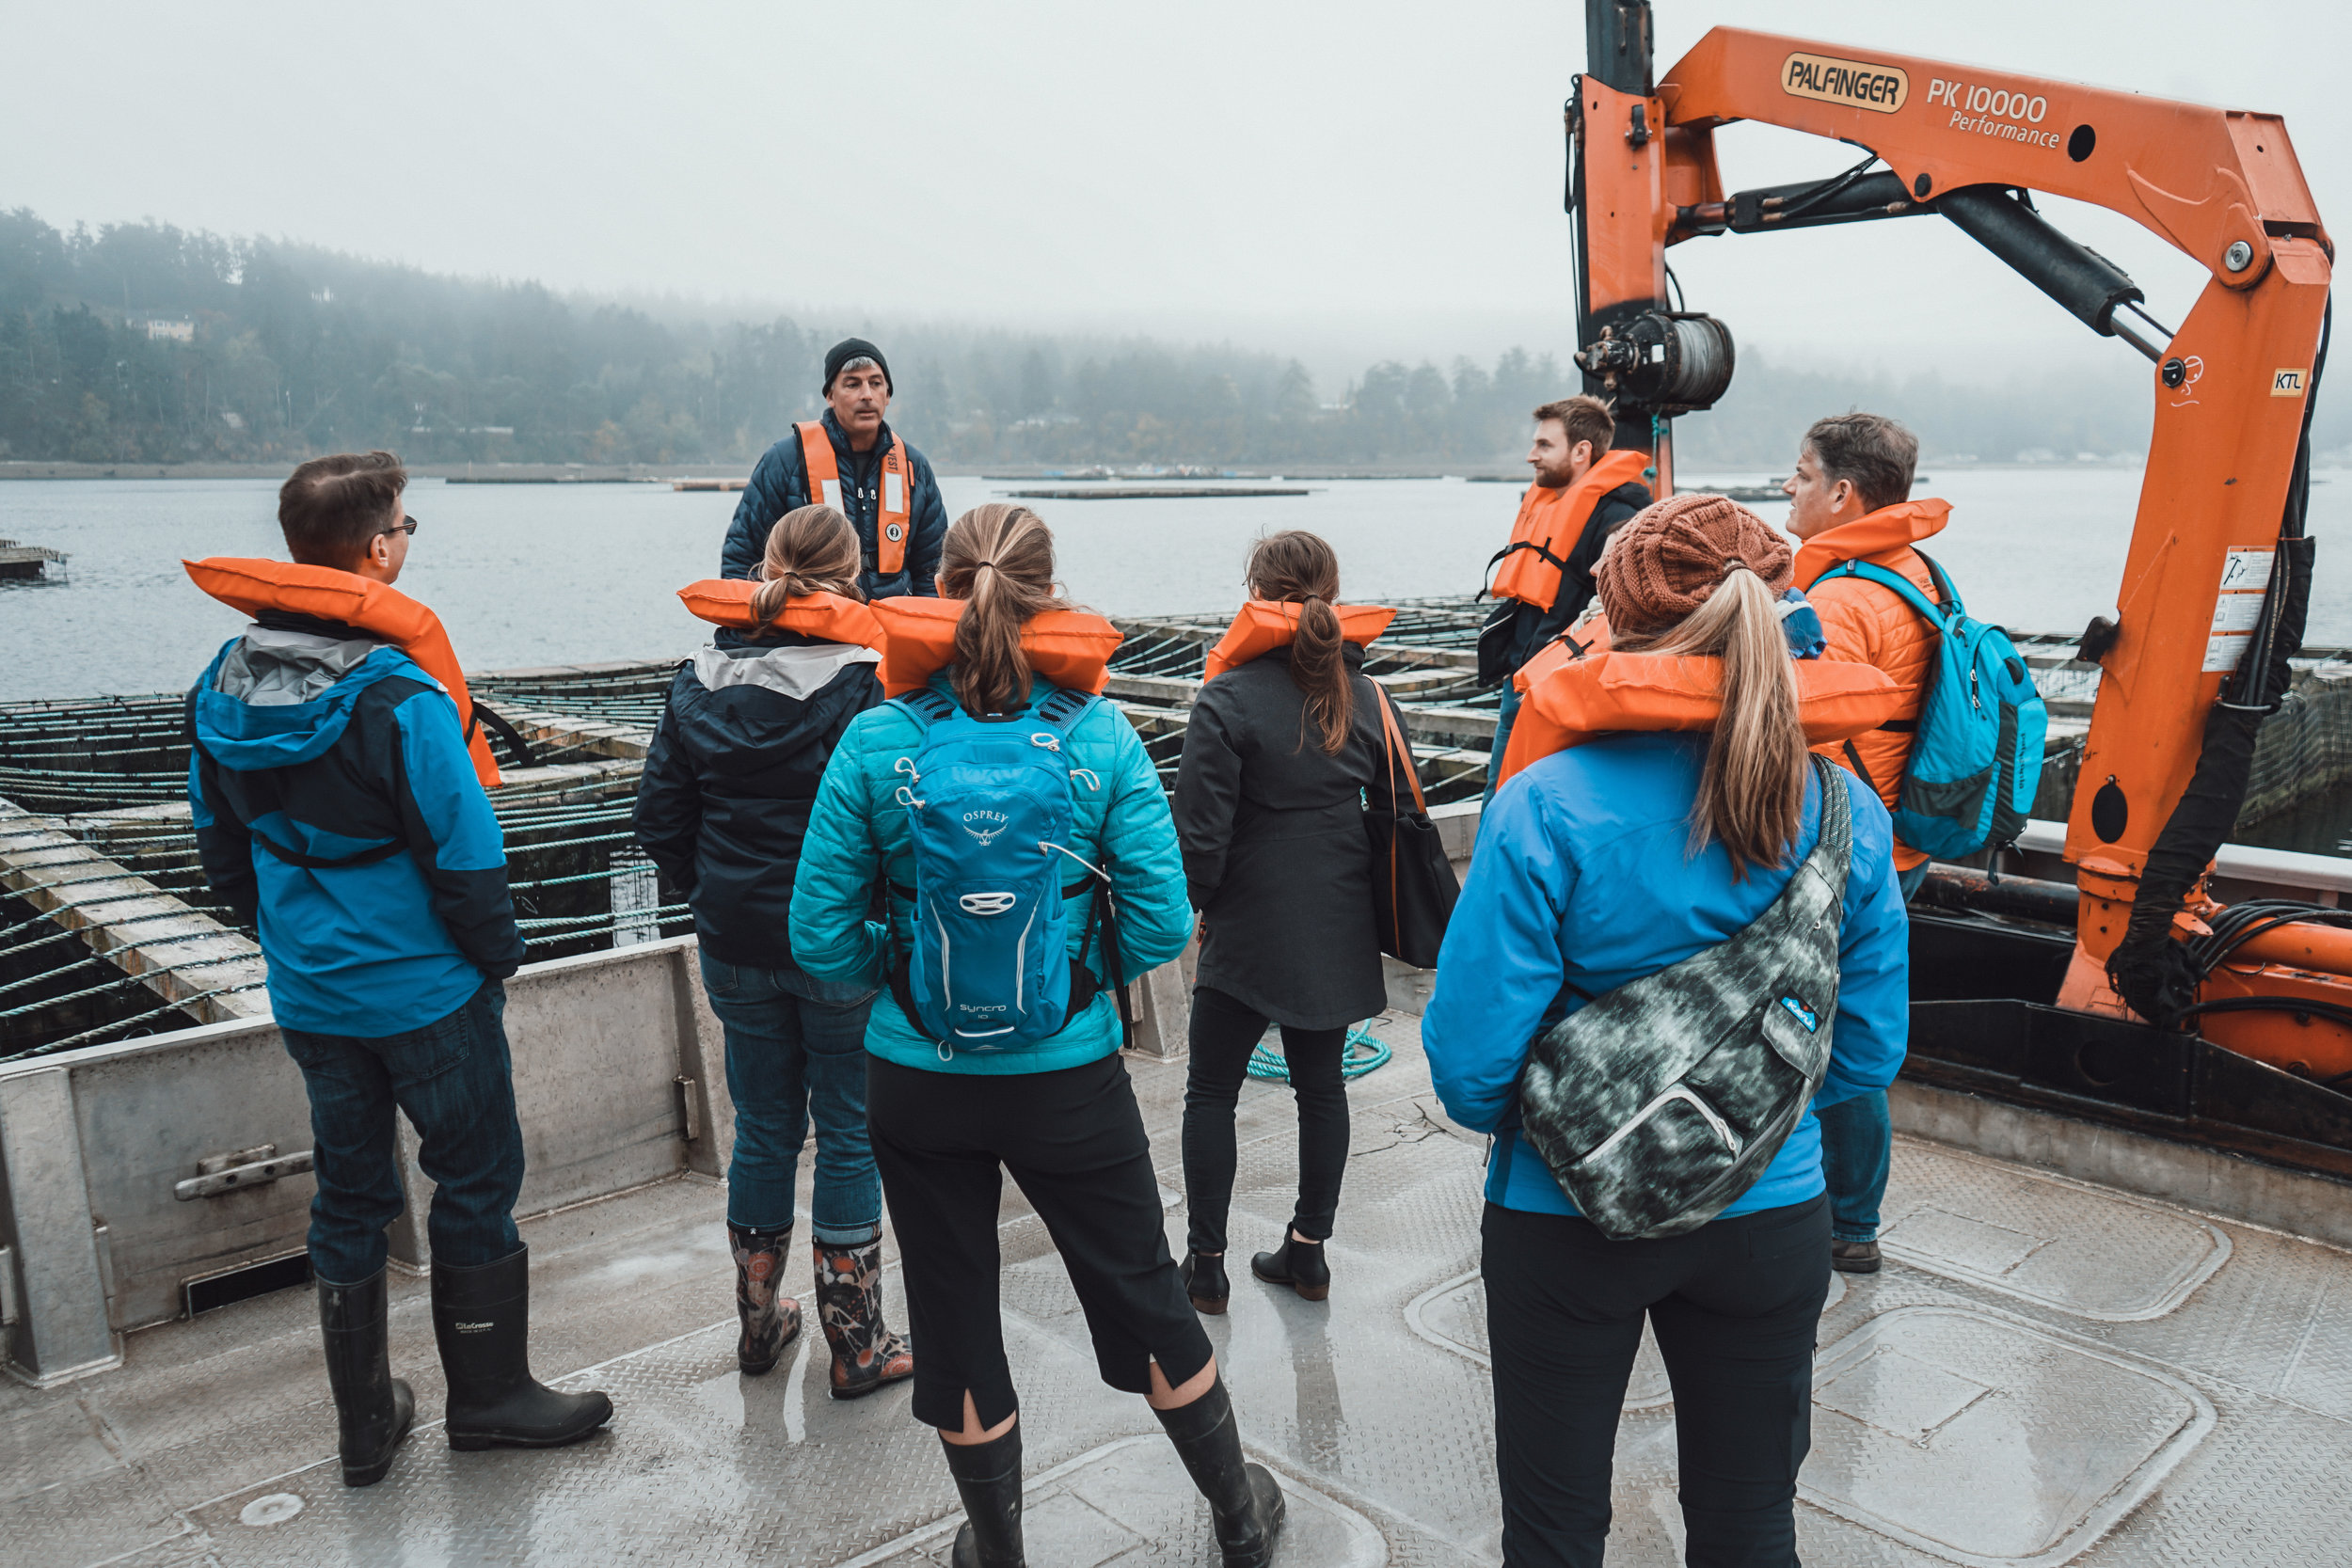 Nature Conservancy staff visited Penn Cove Shellfish Farm